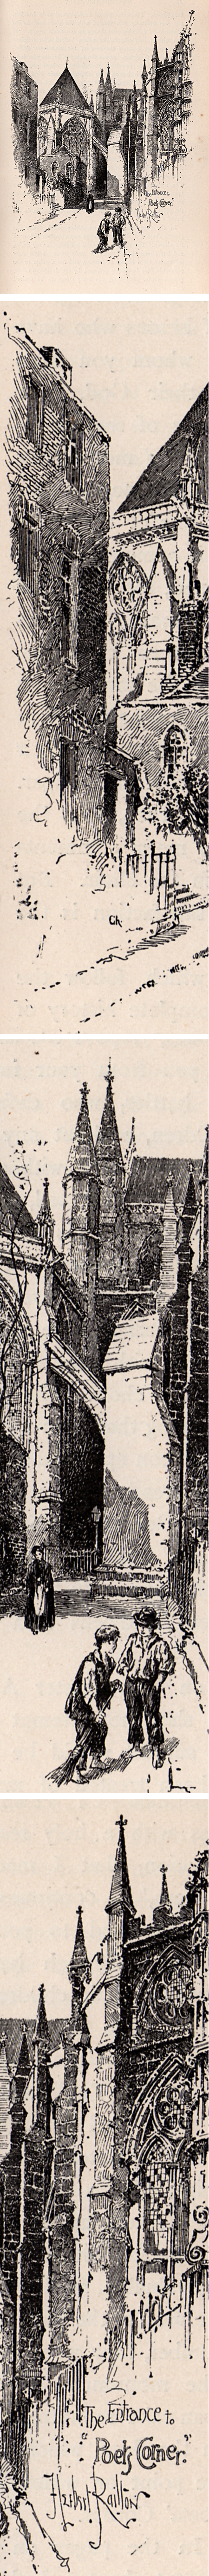 Herbert Railton pen and ink illustration: Entance to the Poets Corner, from A Brief Account of Westminster Abbey